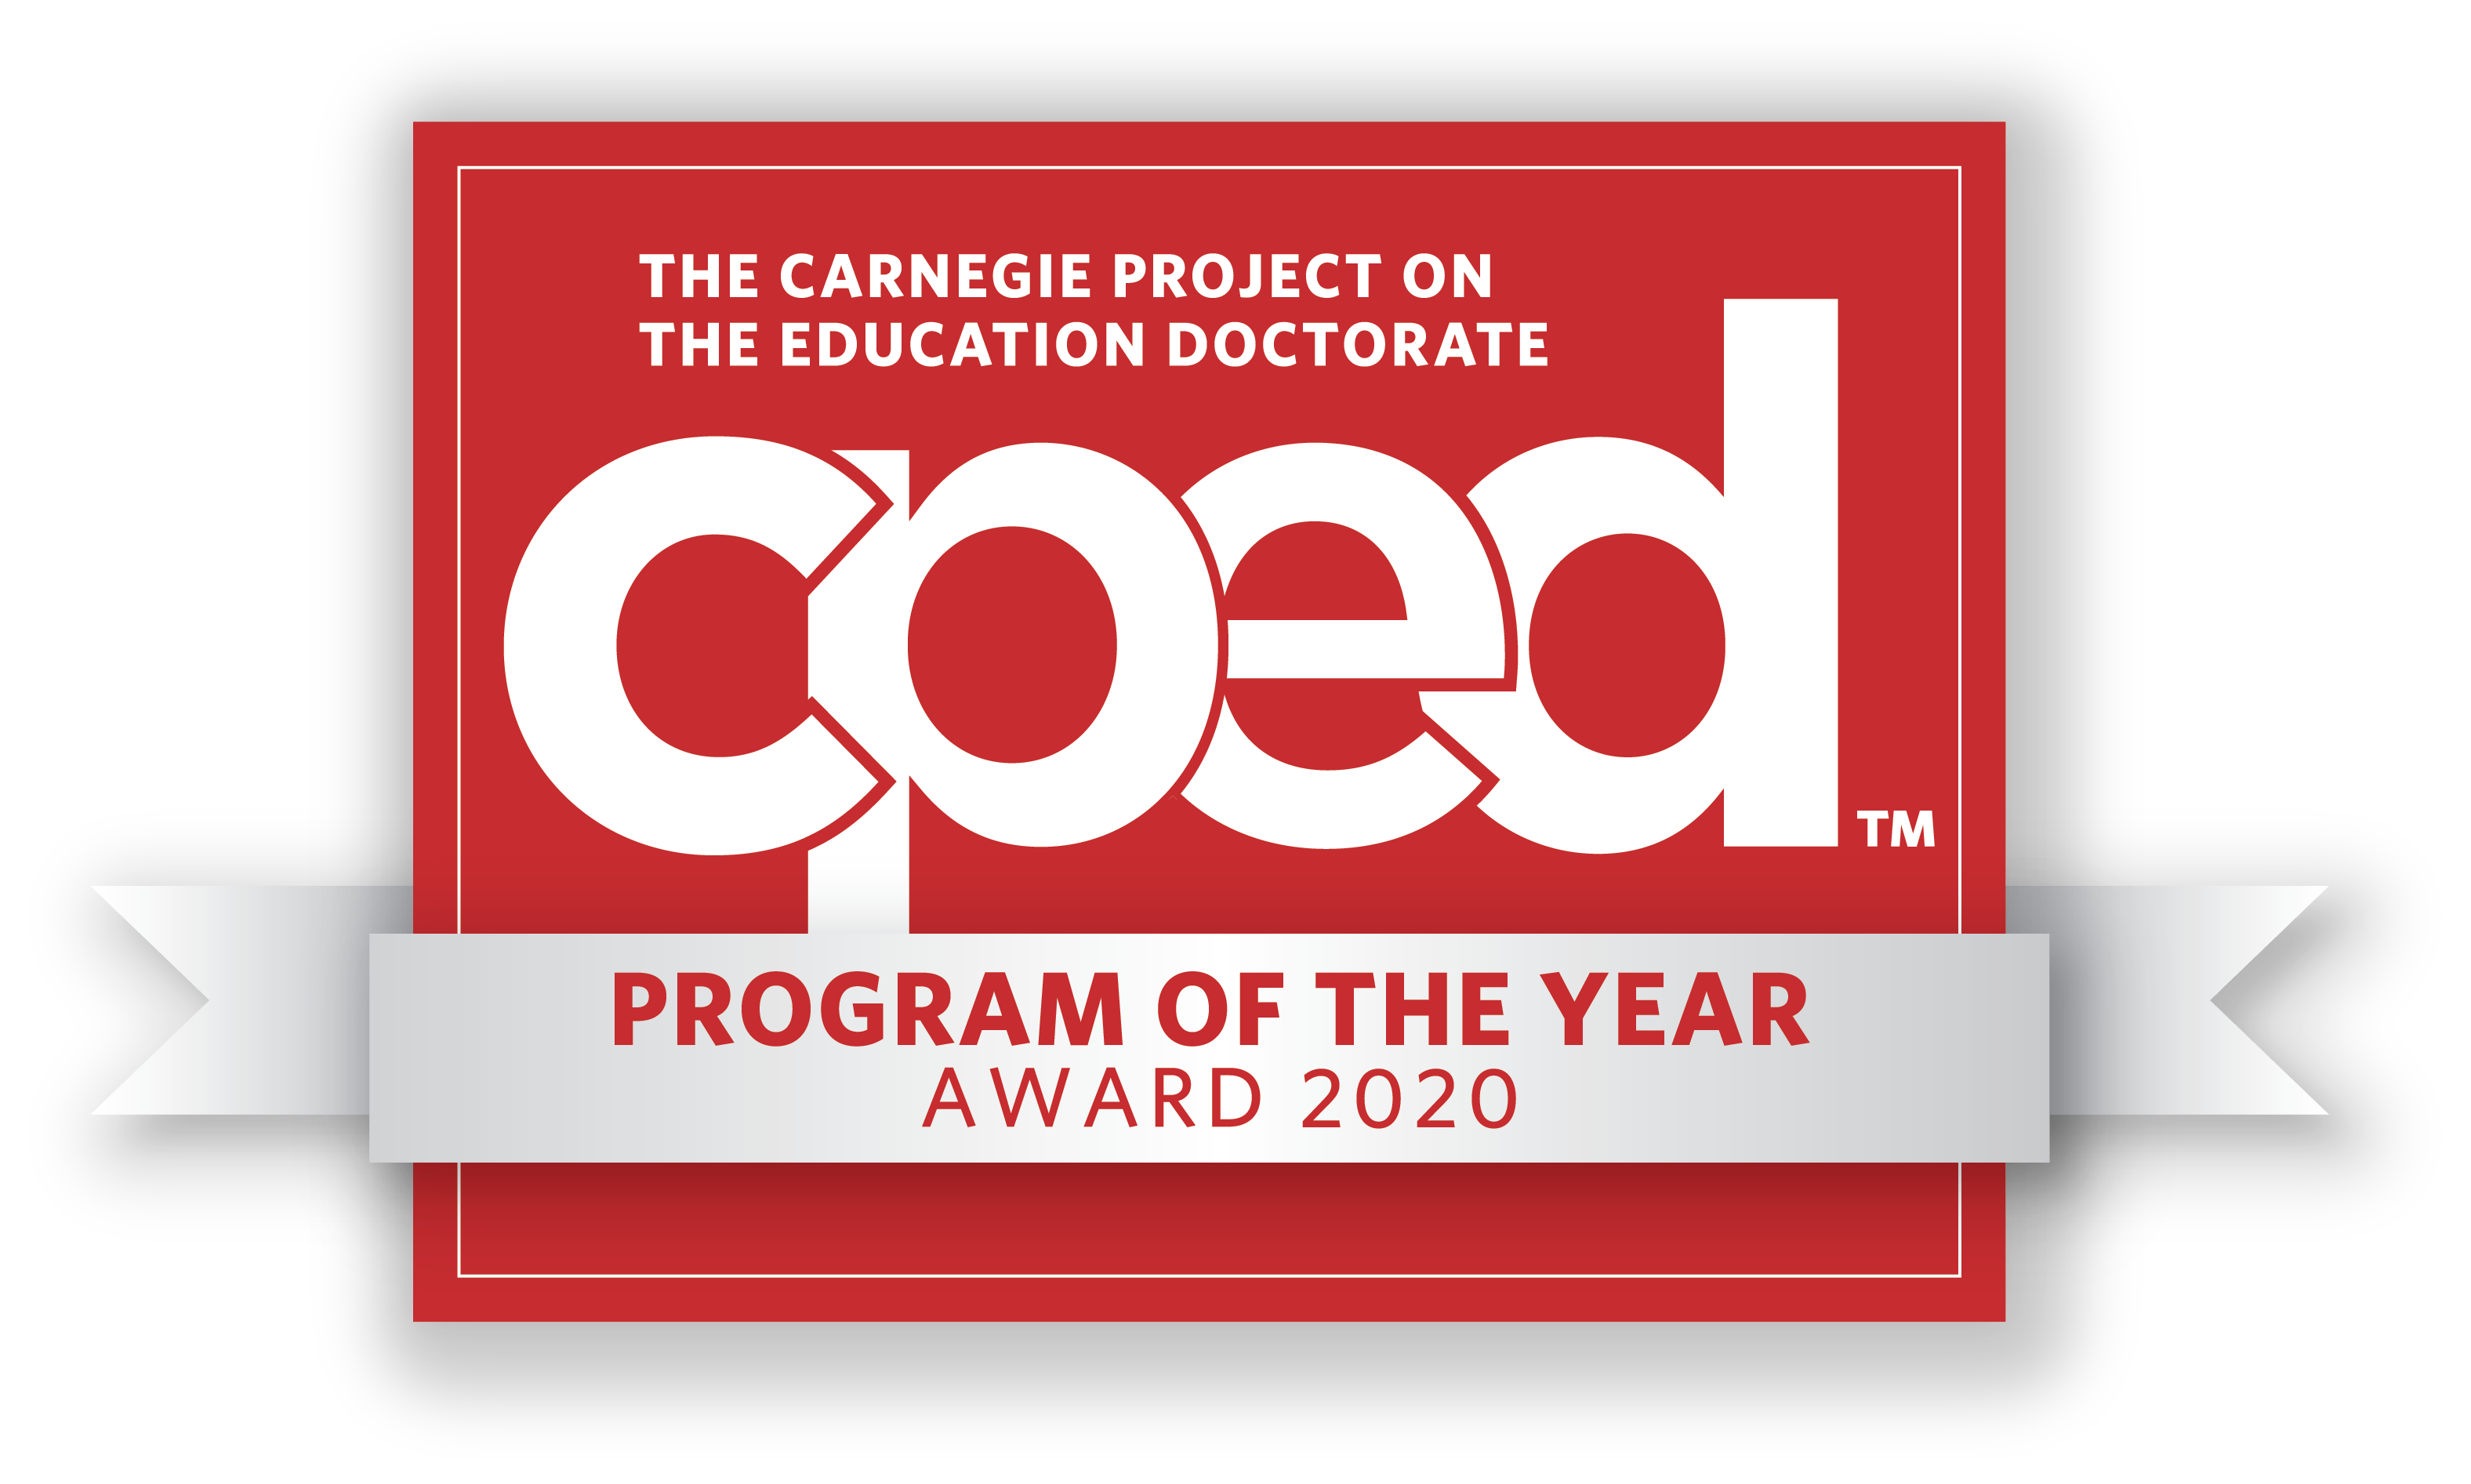 Program of the Year 2020 logo